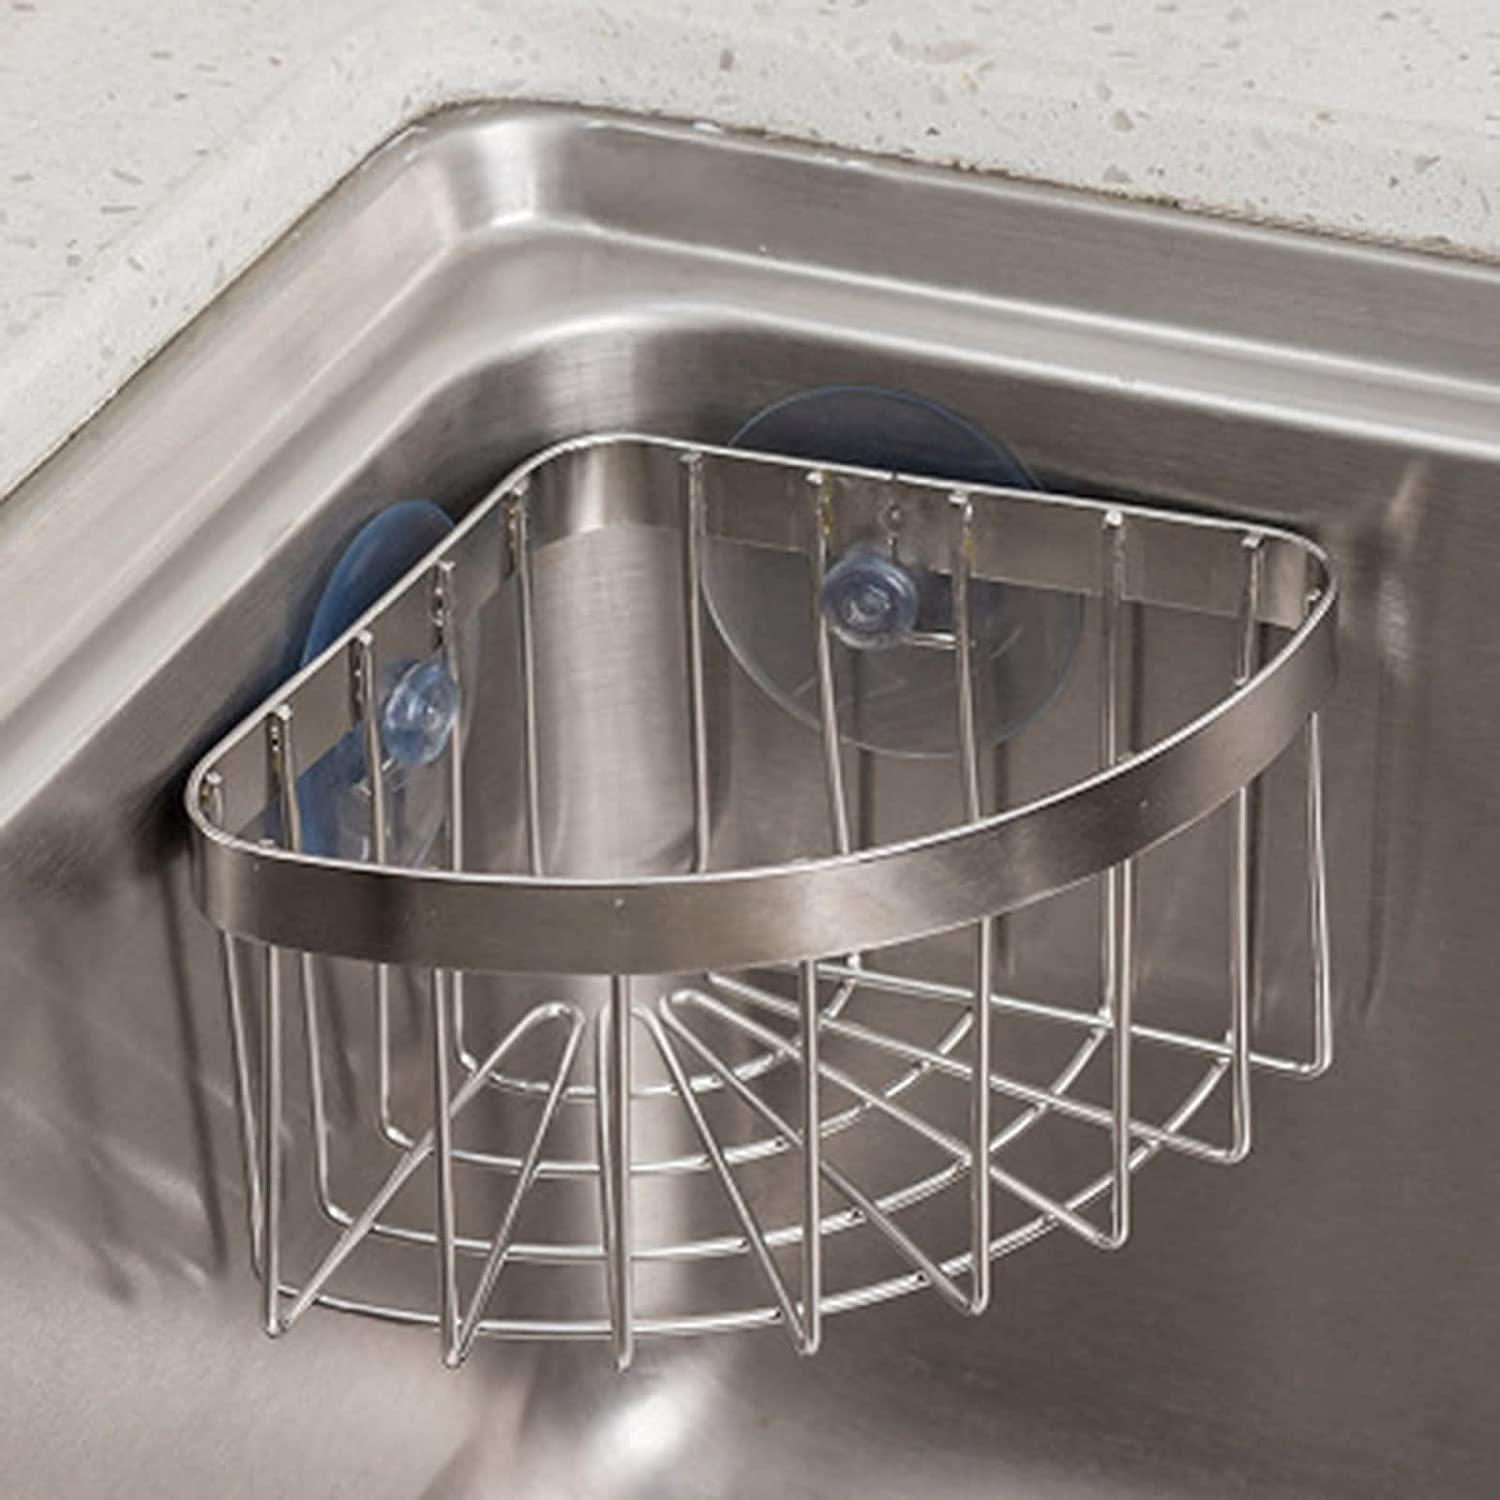 Dish Cloth Indianapolis Mall Online limited product Hanger+Sponge Holder +Corner Tr Caddy Space Sink Save